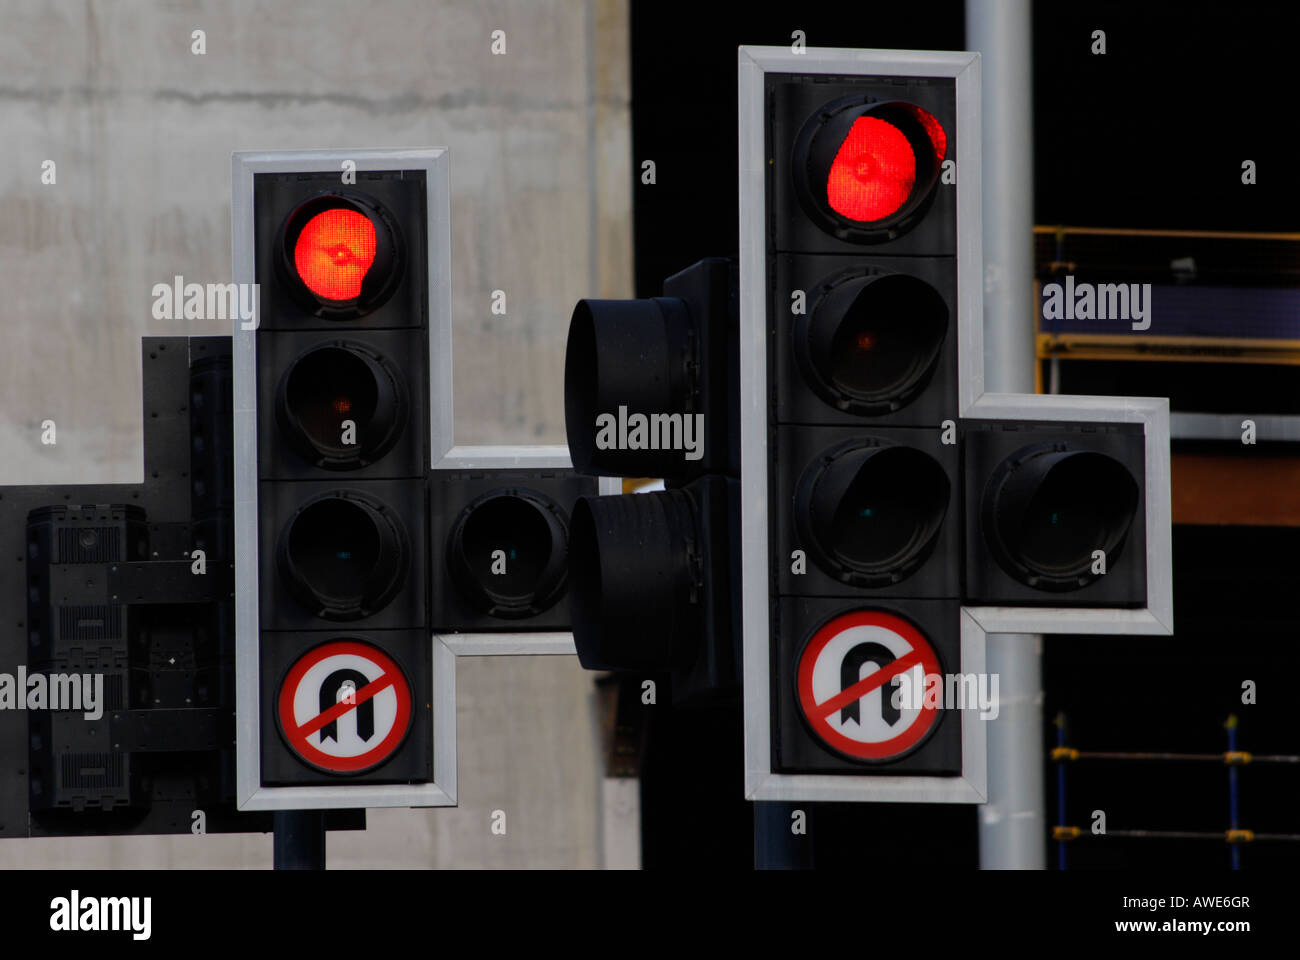 two red stop sign traffic lights - Stock Image